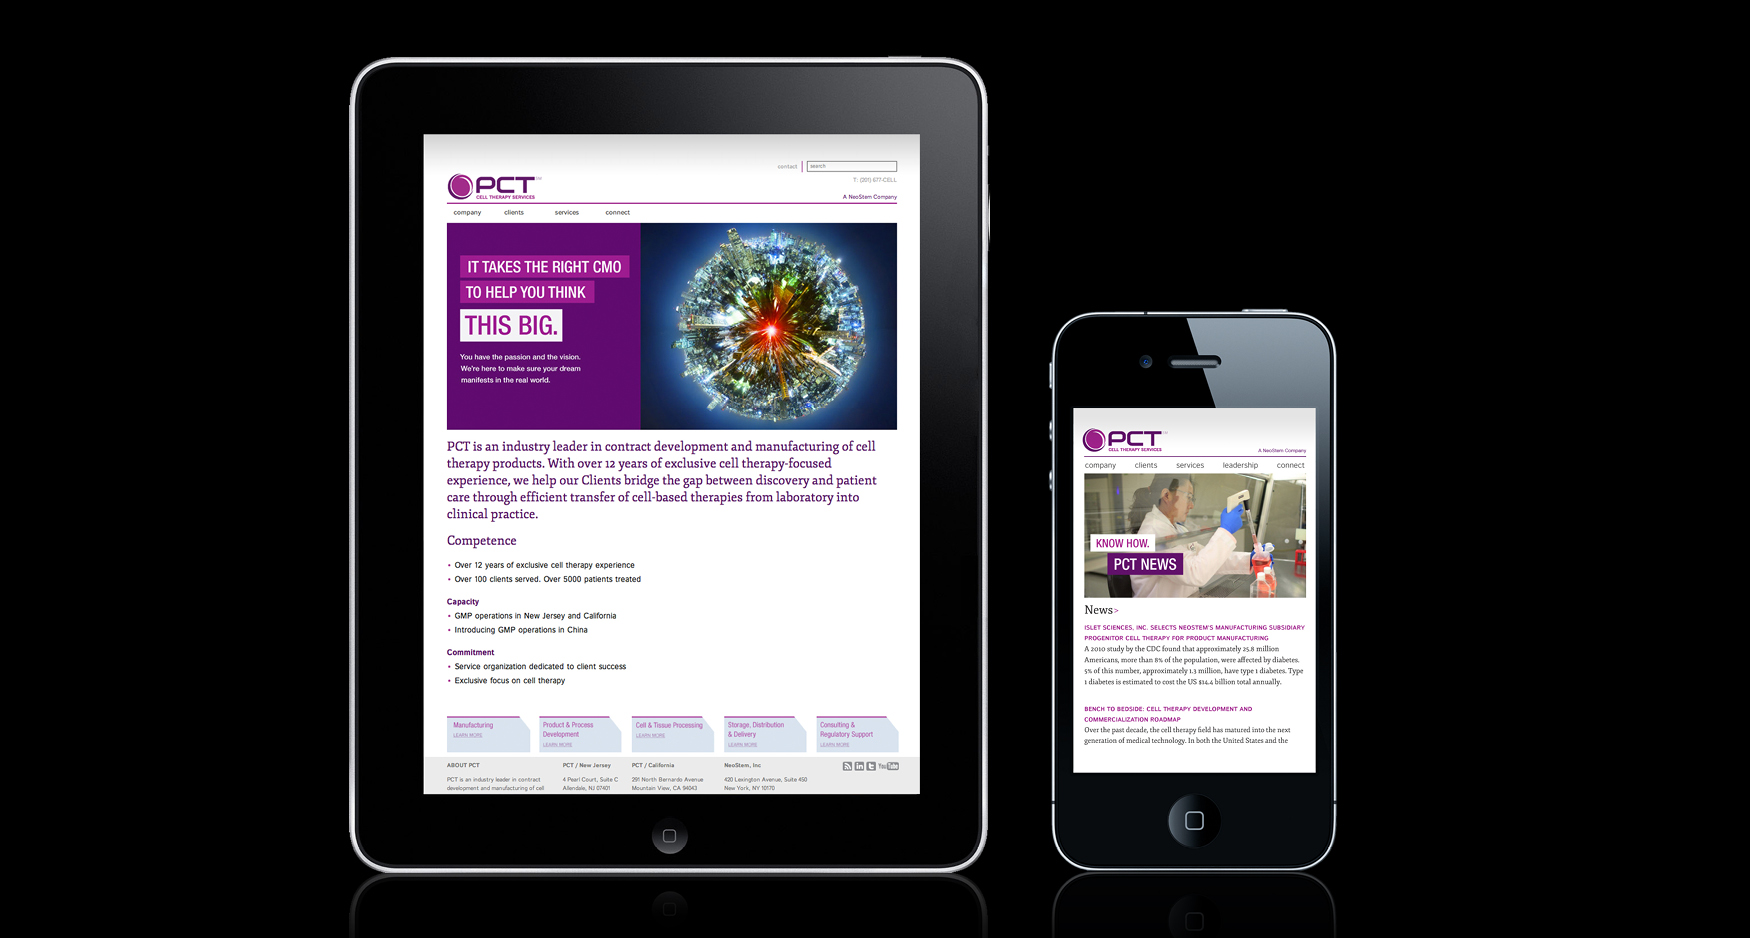 BP Large Website Images14 - PCT CELL THERAPY - MOBILE WEBSITE